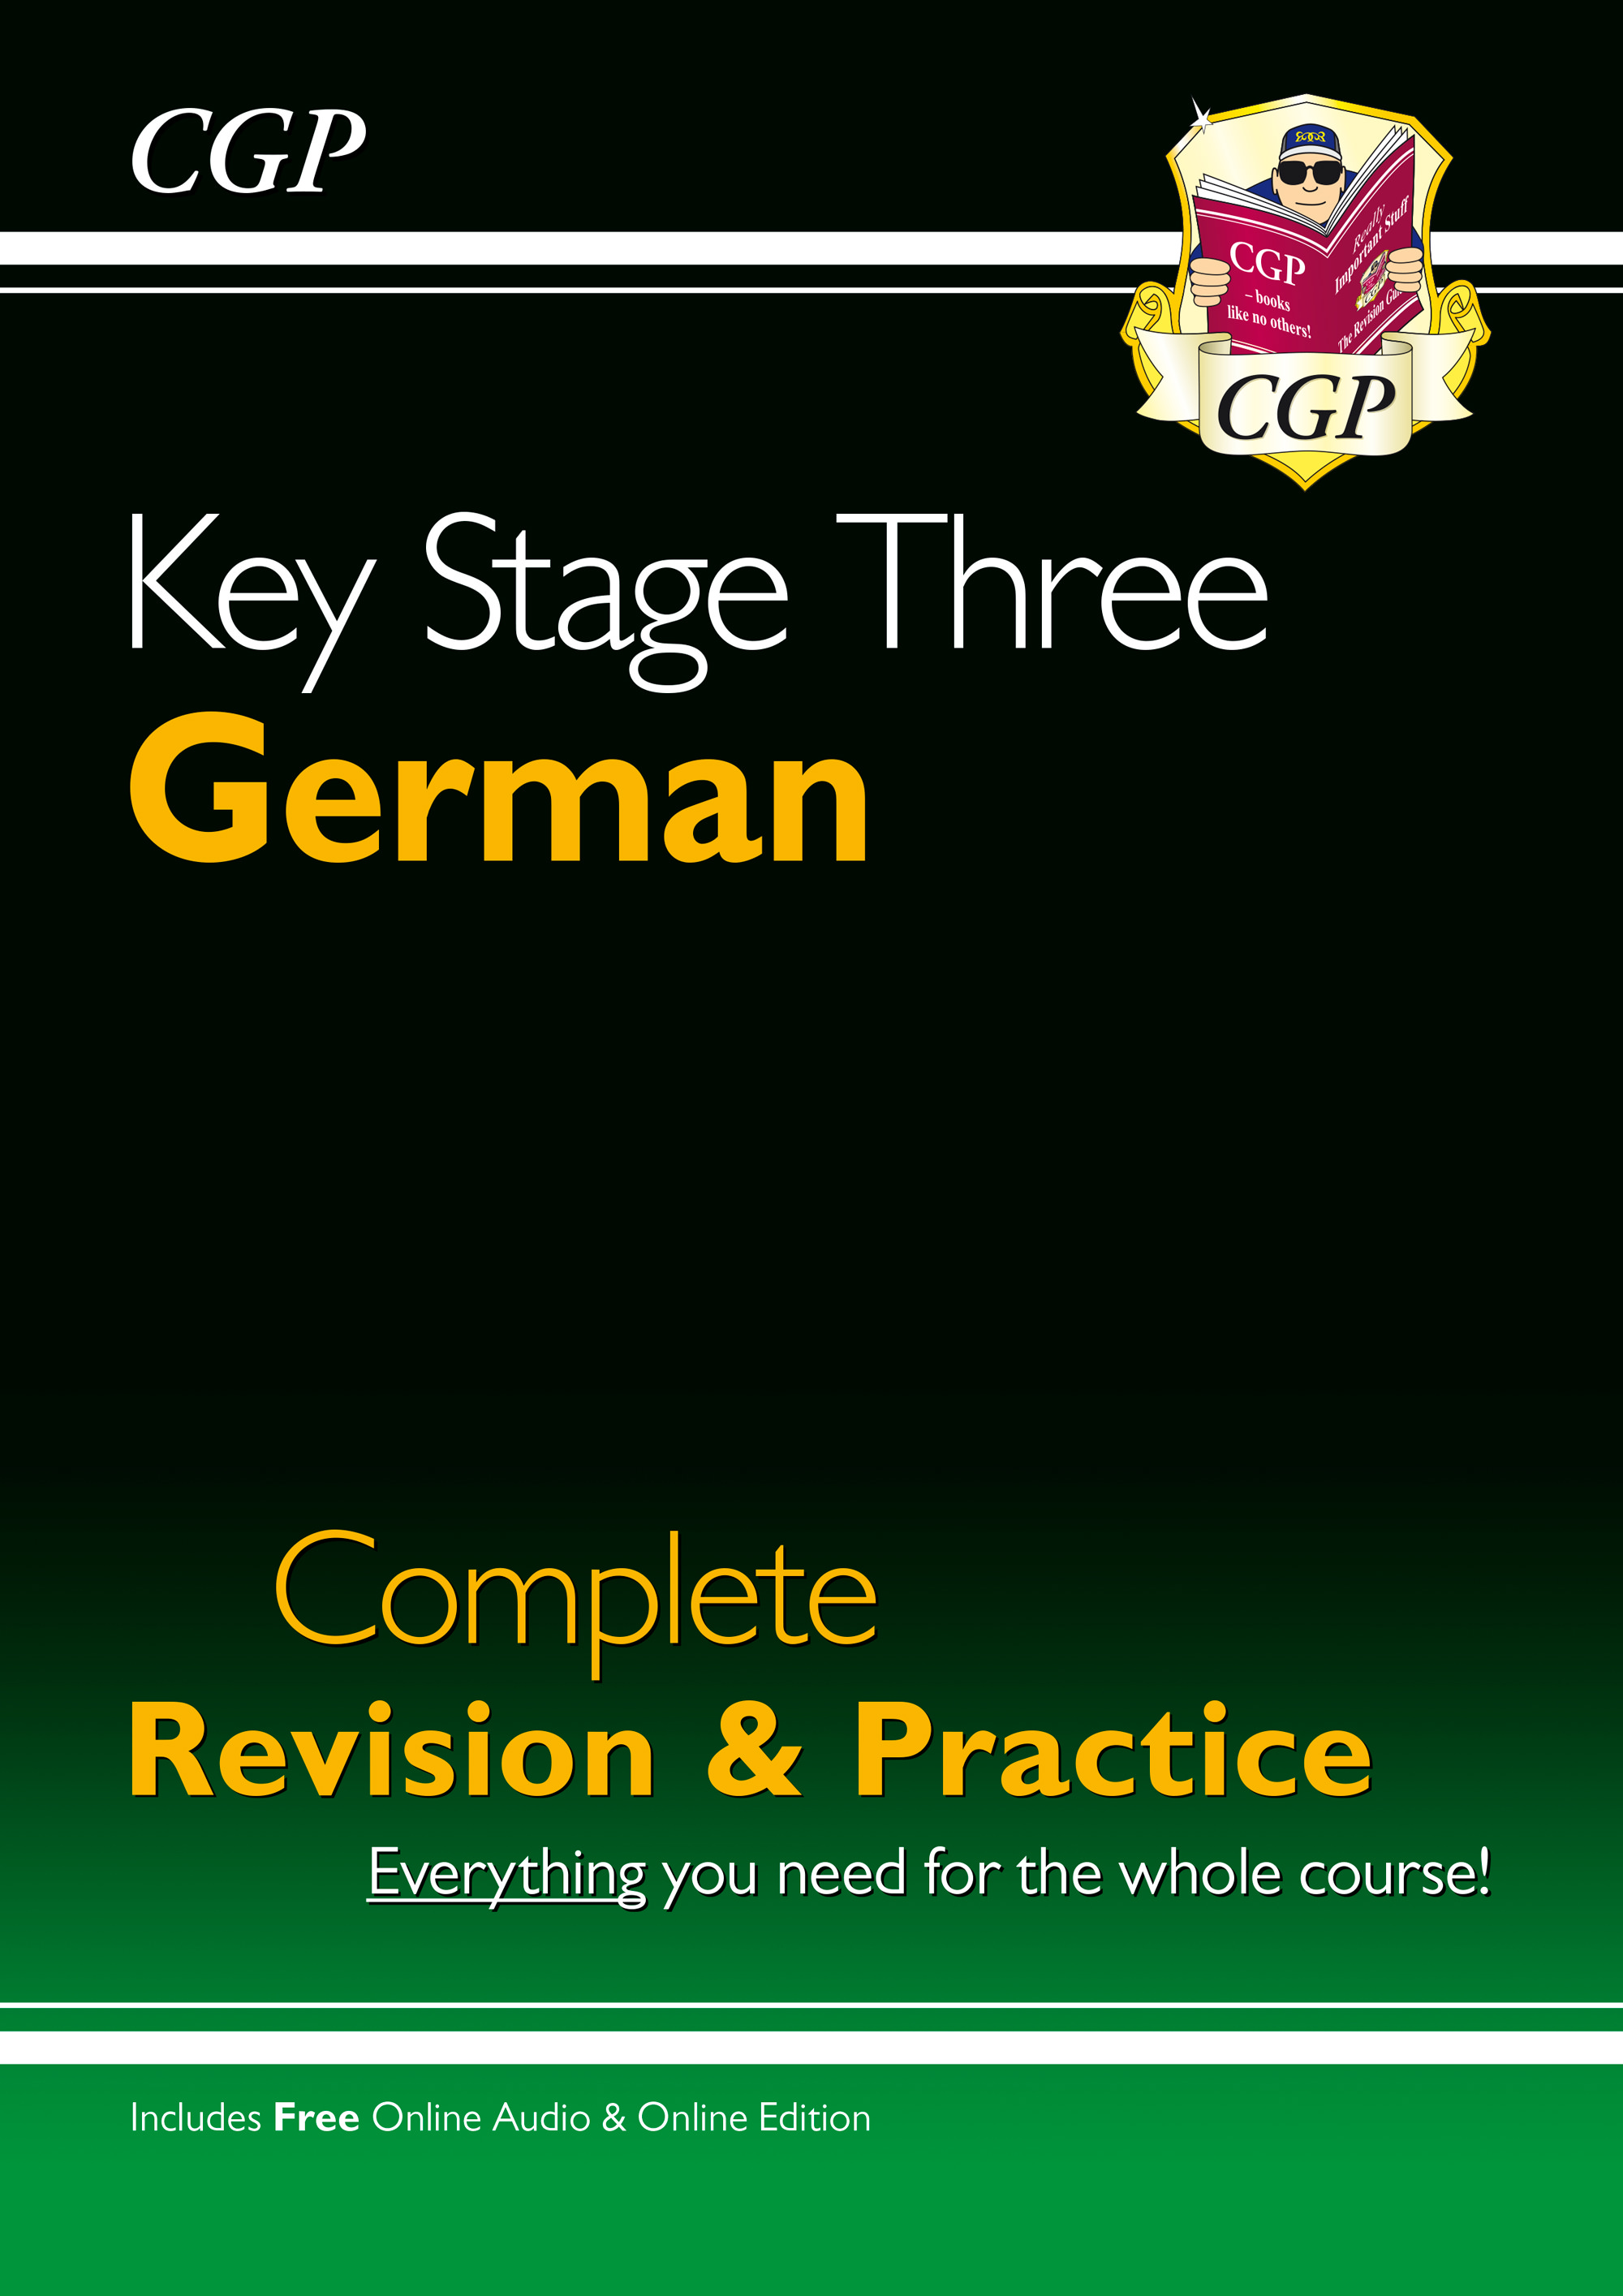 DHS32 - New KS3 German Complete Revision & Practice with Free Online Audio